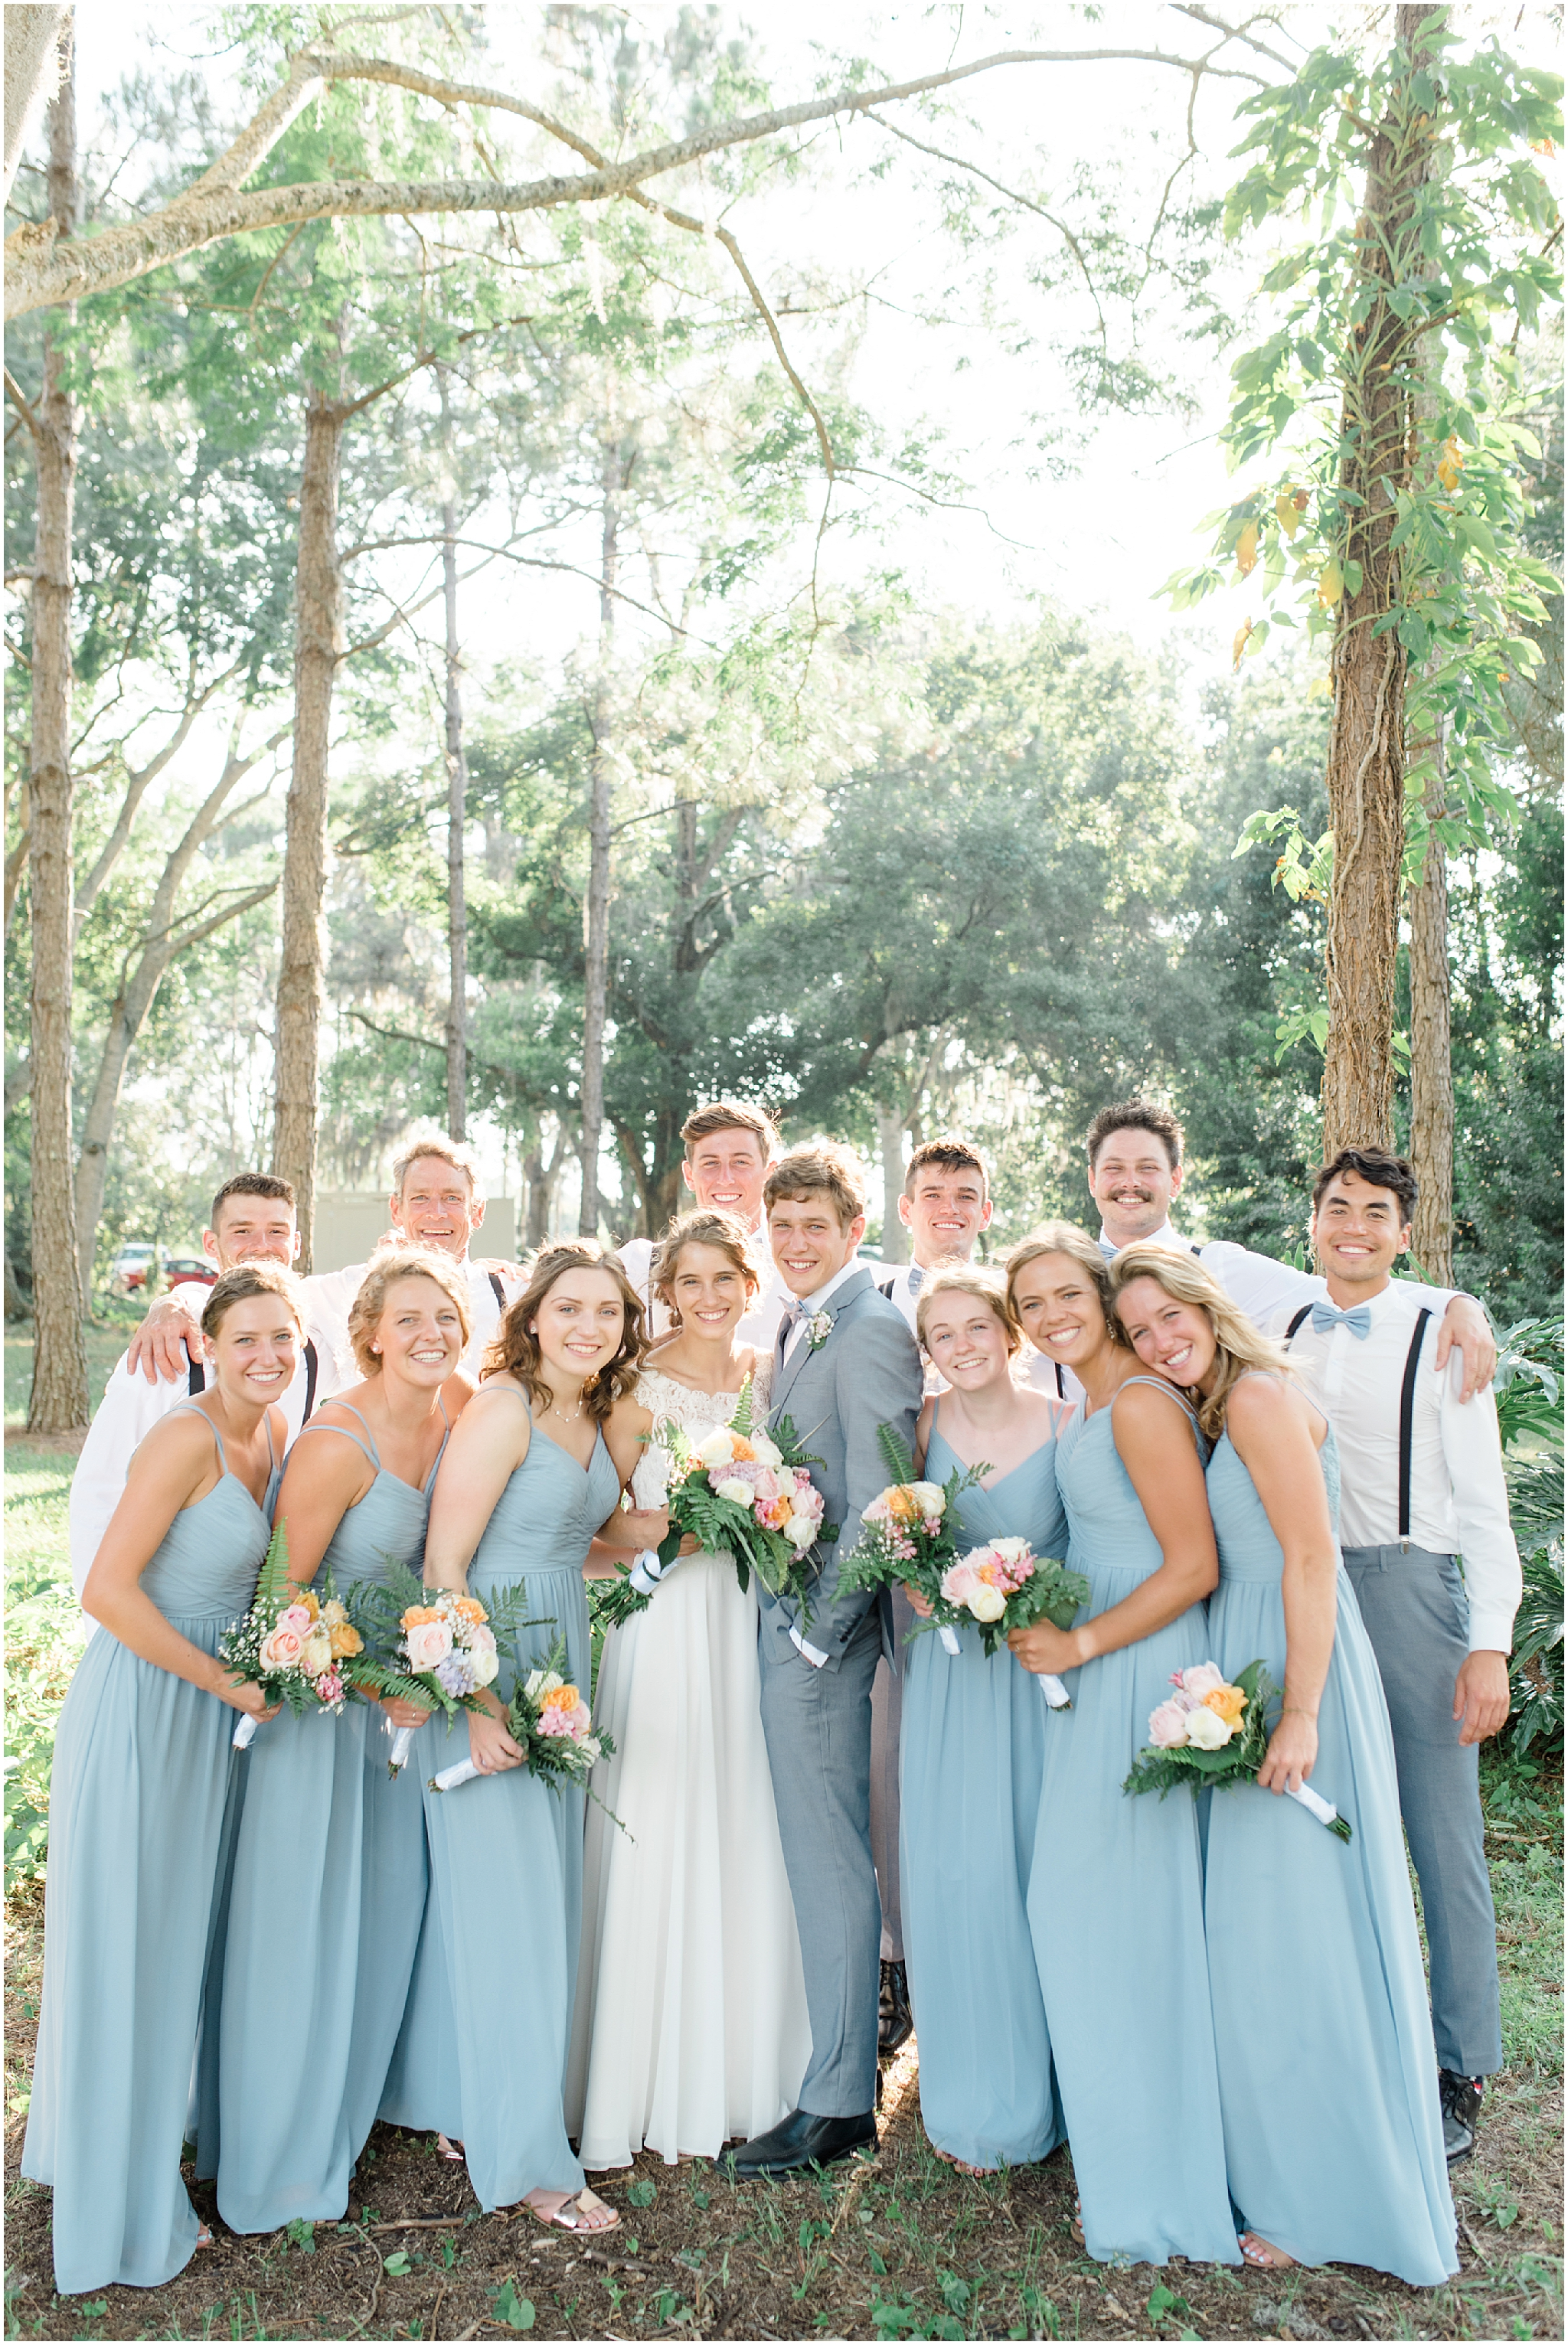 A Beautiful, Outdoor Odessa Florida Wedding by Olivia Rae Photography, Florida Wedding Photographer